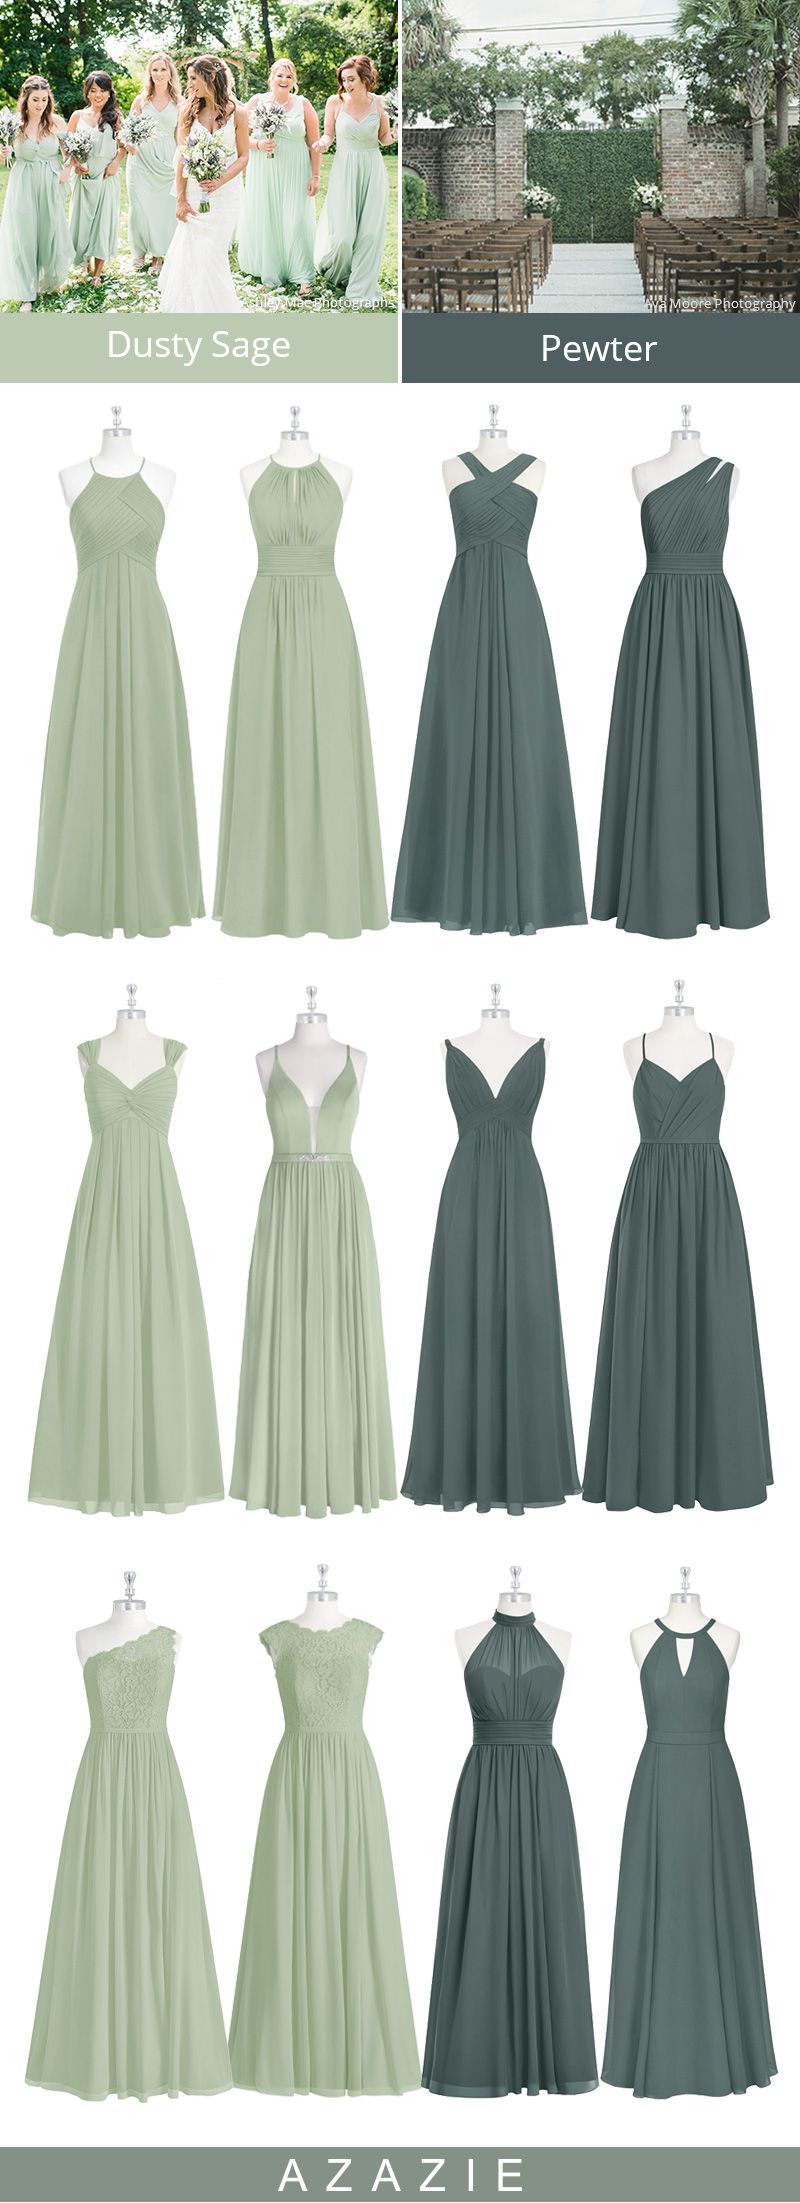 Azazie Sage Bridesmaid Dresses Bridesmaid Dresses Dusty Sage Sage Bridesmaid Dresses Fall Bridesmaid Dresses